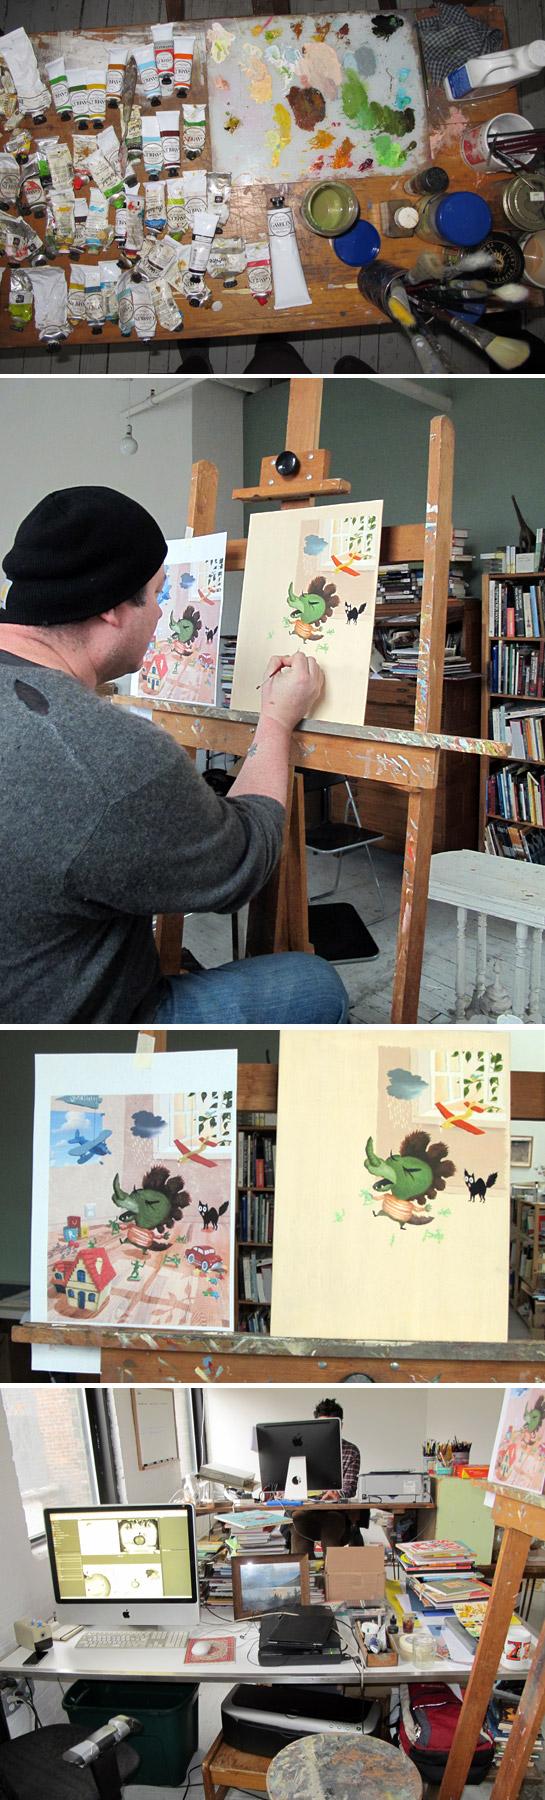 "EDWARD HEMINGWAY'S WORK SPACE. From top: Eddie's oil paints; Eddie working on a painting for an as-yet-to-be-named project; a sketch(left) and the beginnings of a final oil painting. The sketch looks like it could be a final right? Eddie uses a combination of drawing and collage for his sketches. ""Actually it loosens me up in a way.""; Eddie's computer with a black & white comp of the sequel to Bad Apple."